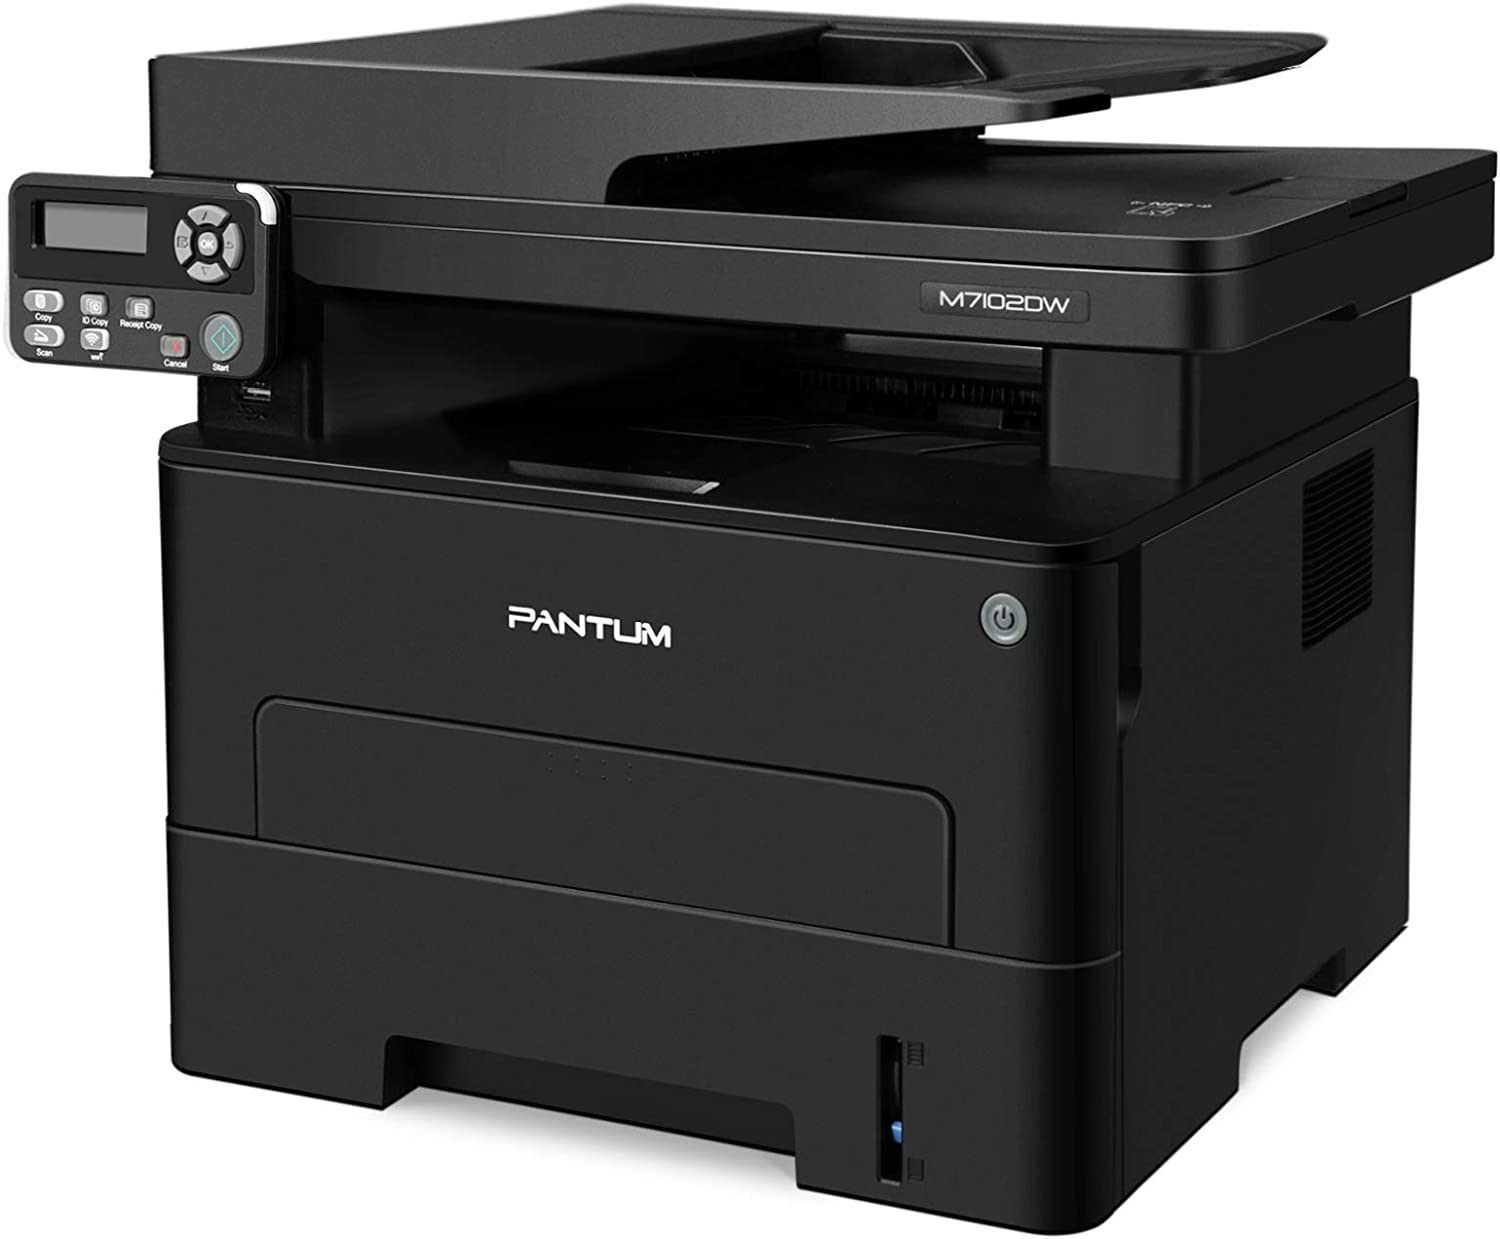 All in One Laser Printer Scanner Copier with ADF, Wireless Multifunction Black and White Laser Printer, Auto Duplex Printing Pantum M7102DW (W5U61A)